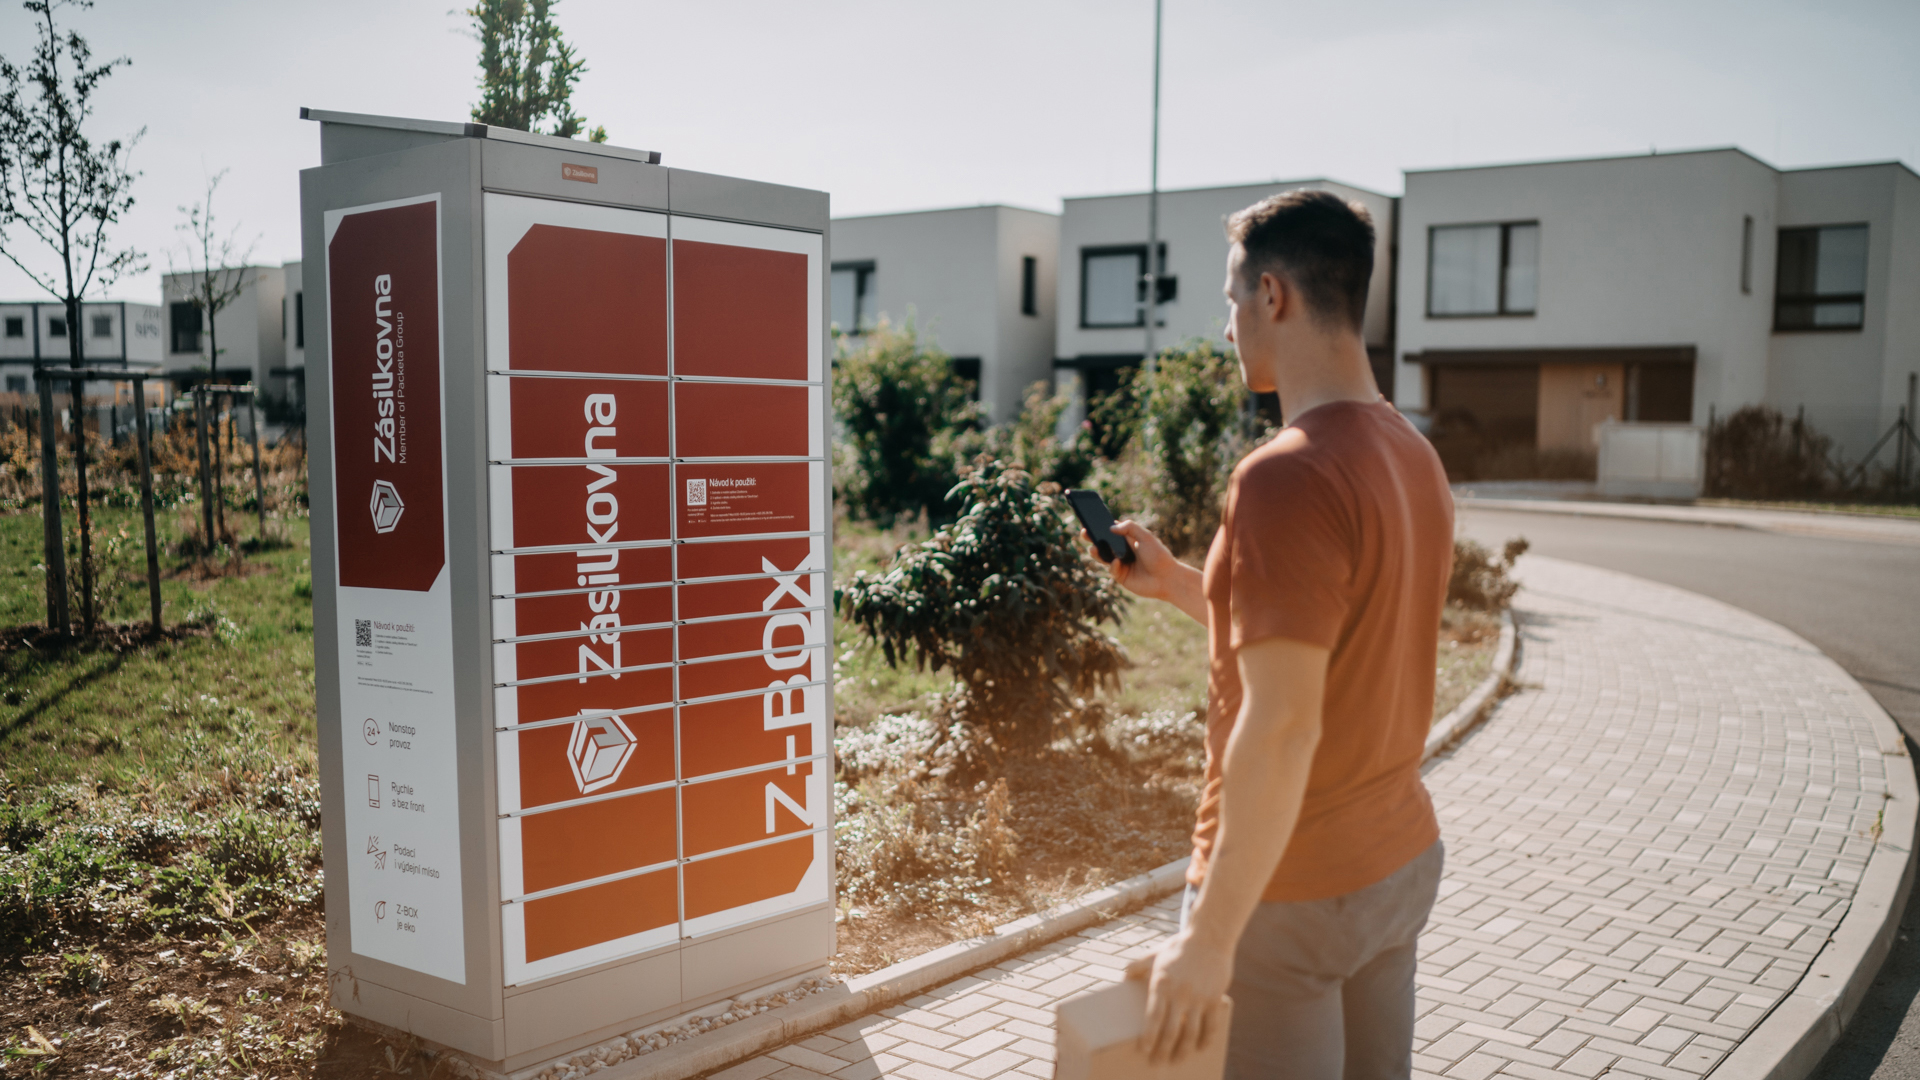 Delivering on its promises: How Packeta is shipping globally while staying local and sustainable